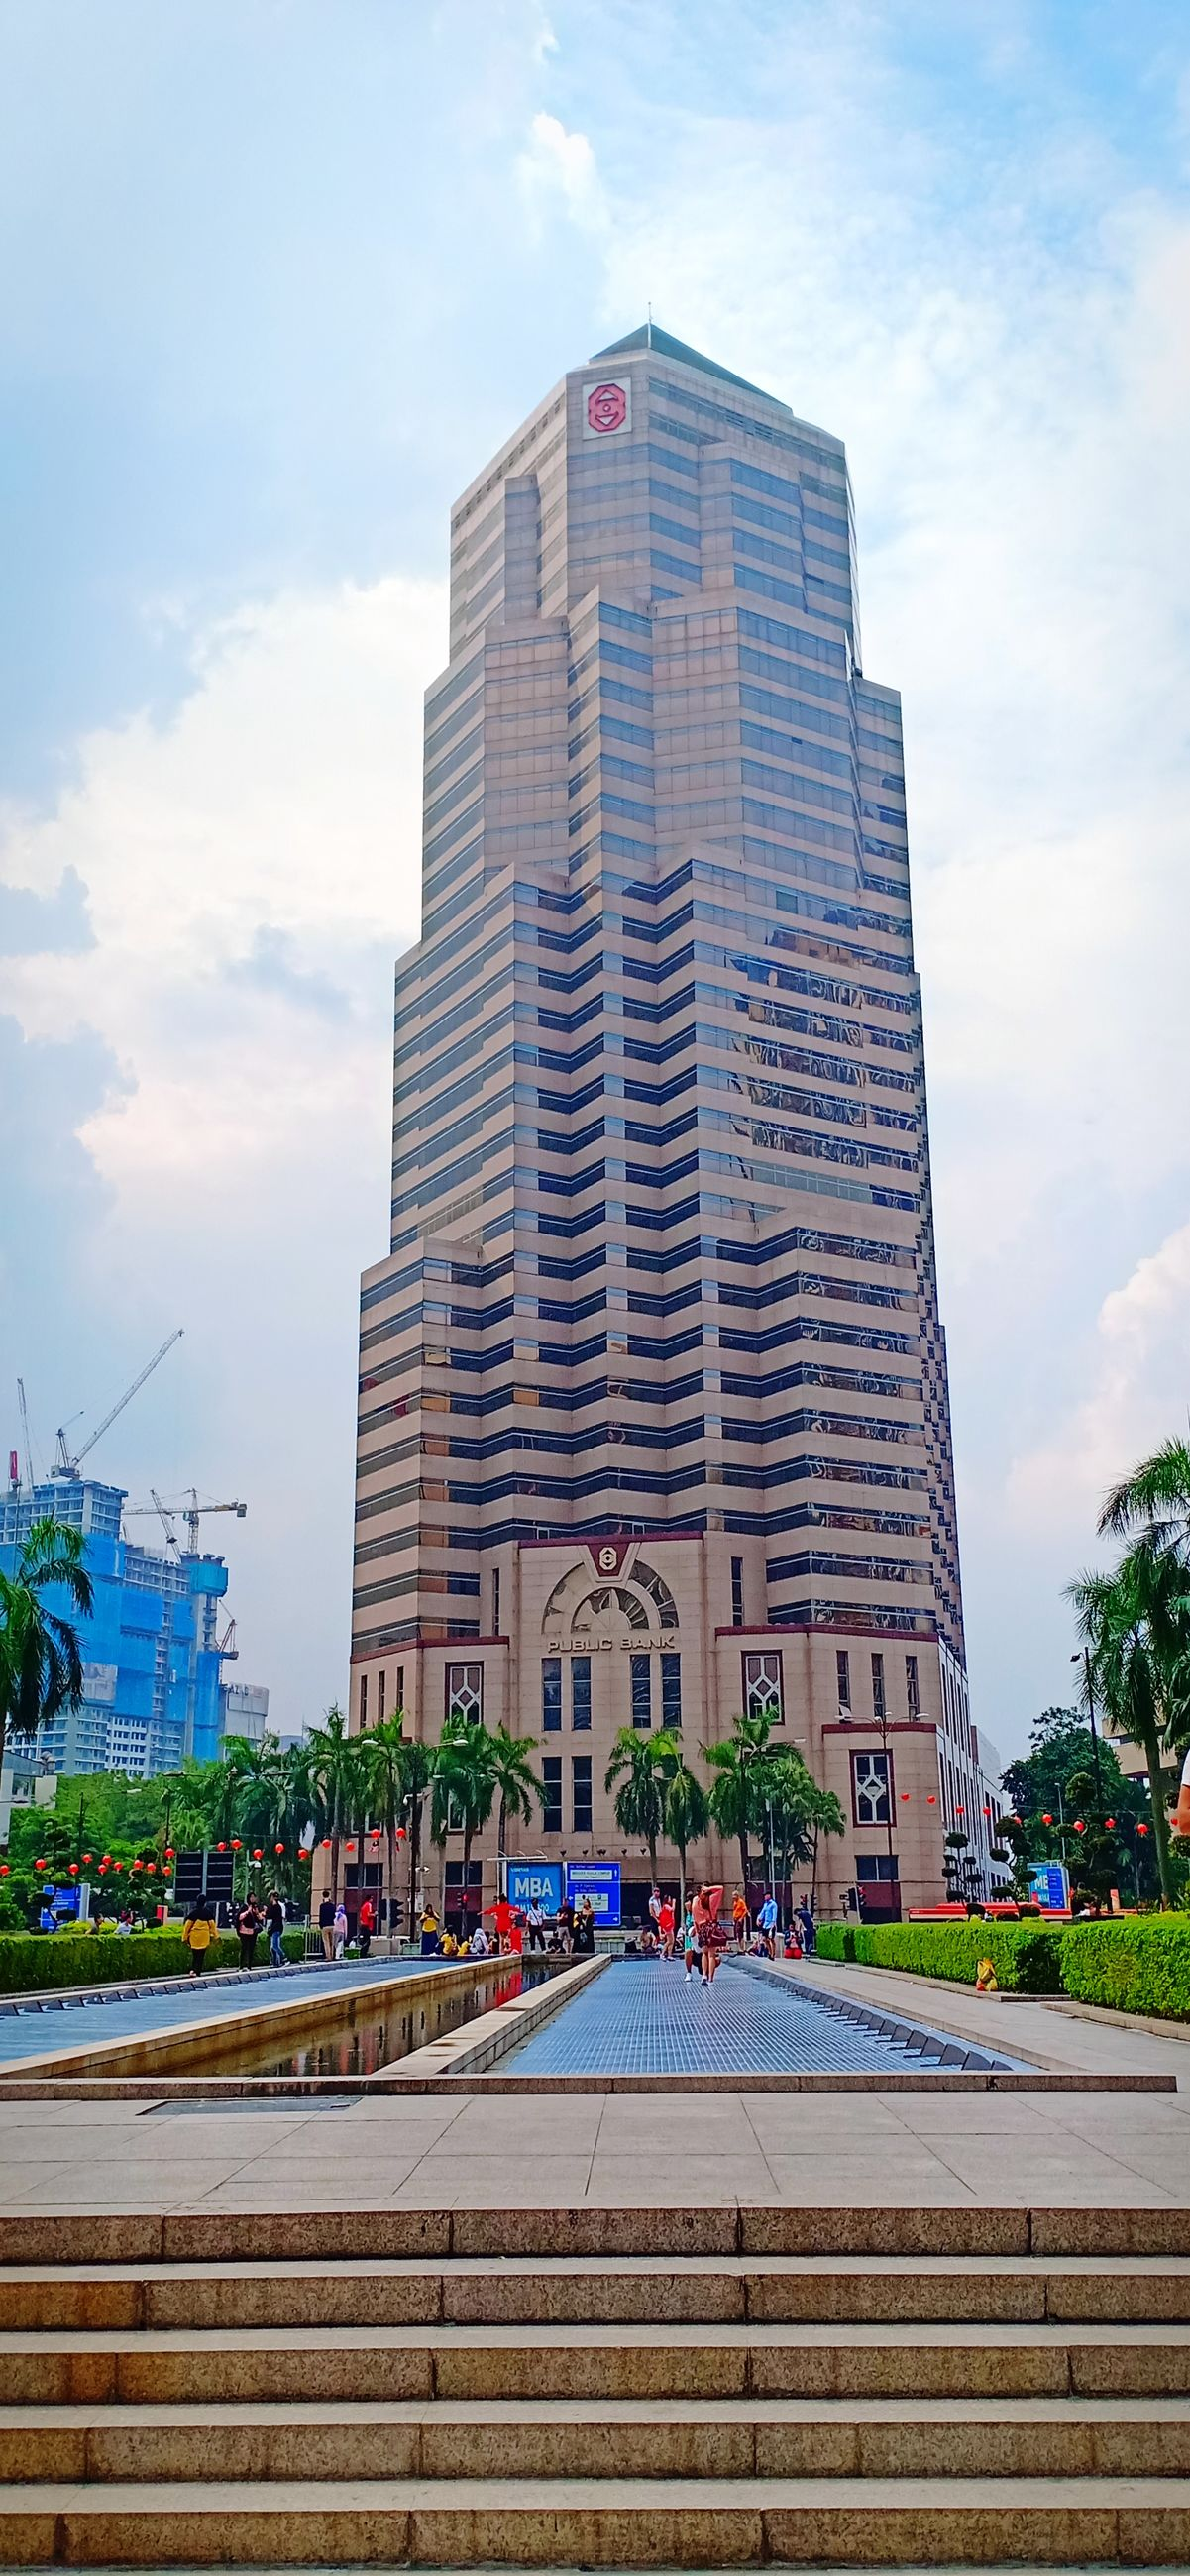 architecture, built structure, building exterior, city, building, sky, cloud - sky, office building exterior, nature, skyscraper, plant, incidental people, office, modern, tall - high, day, staircase, outdoors, tower, low angle view